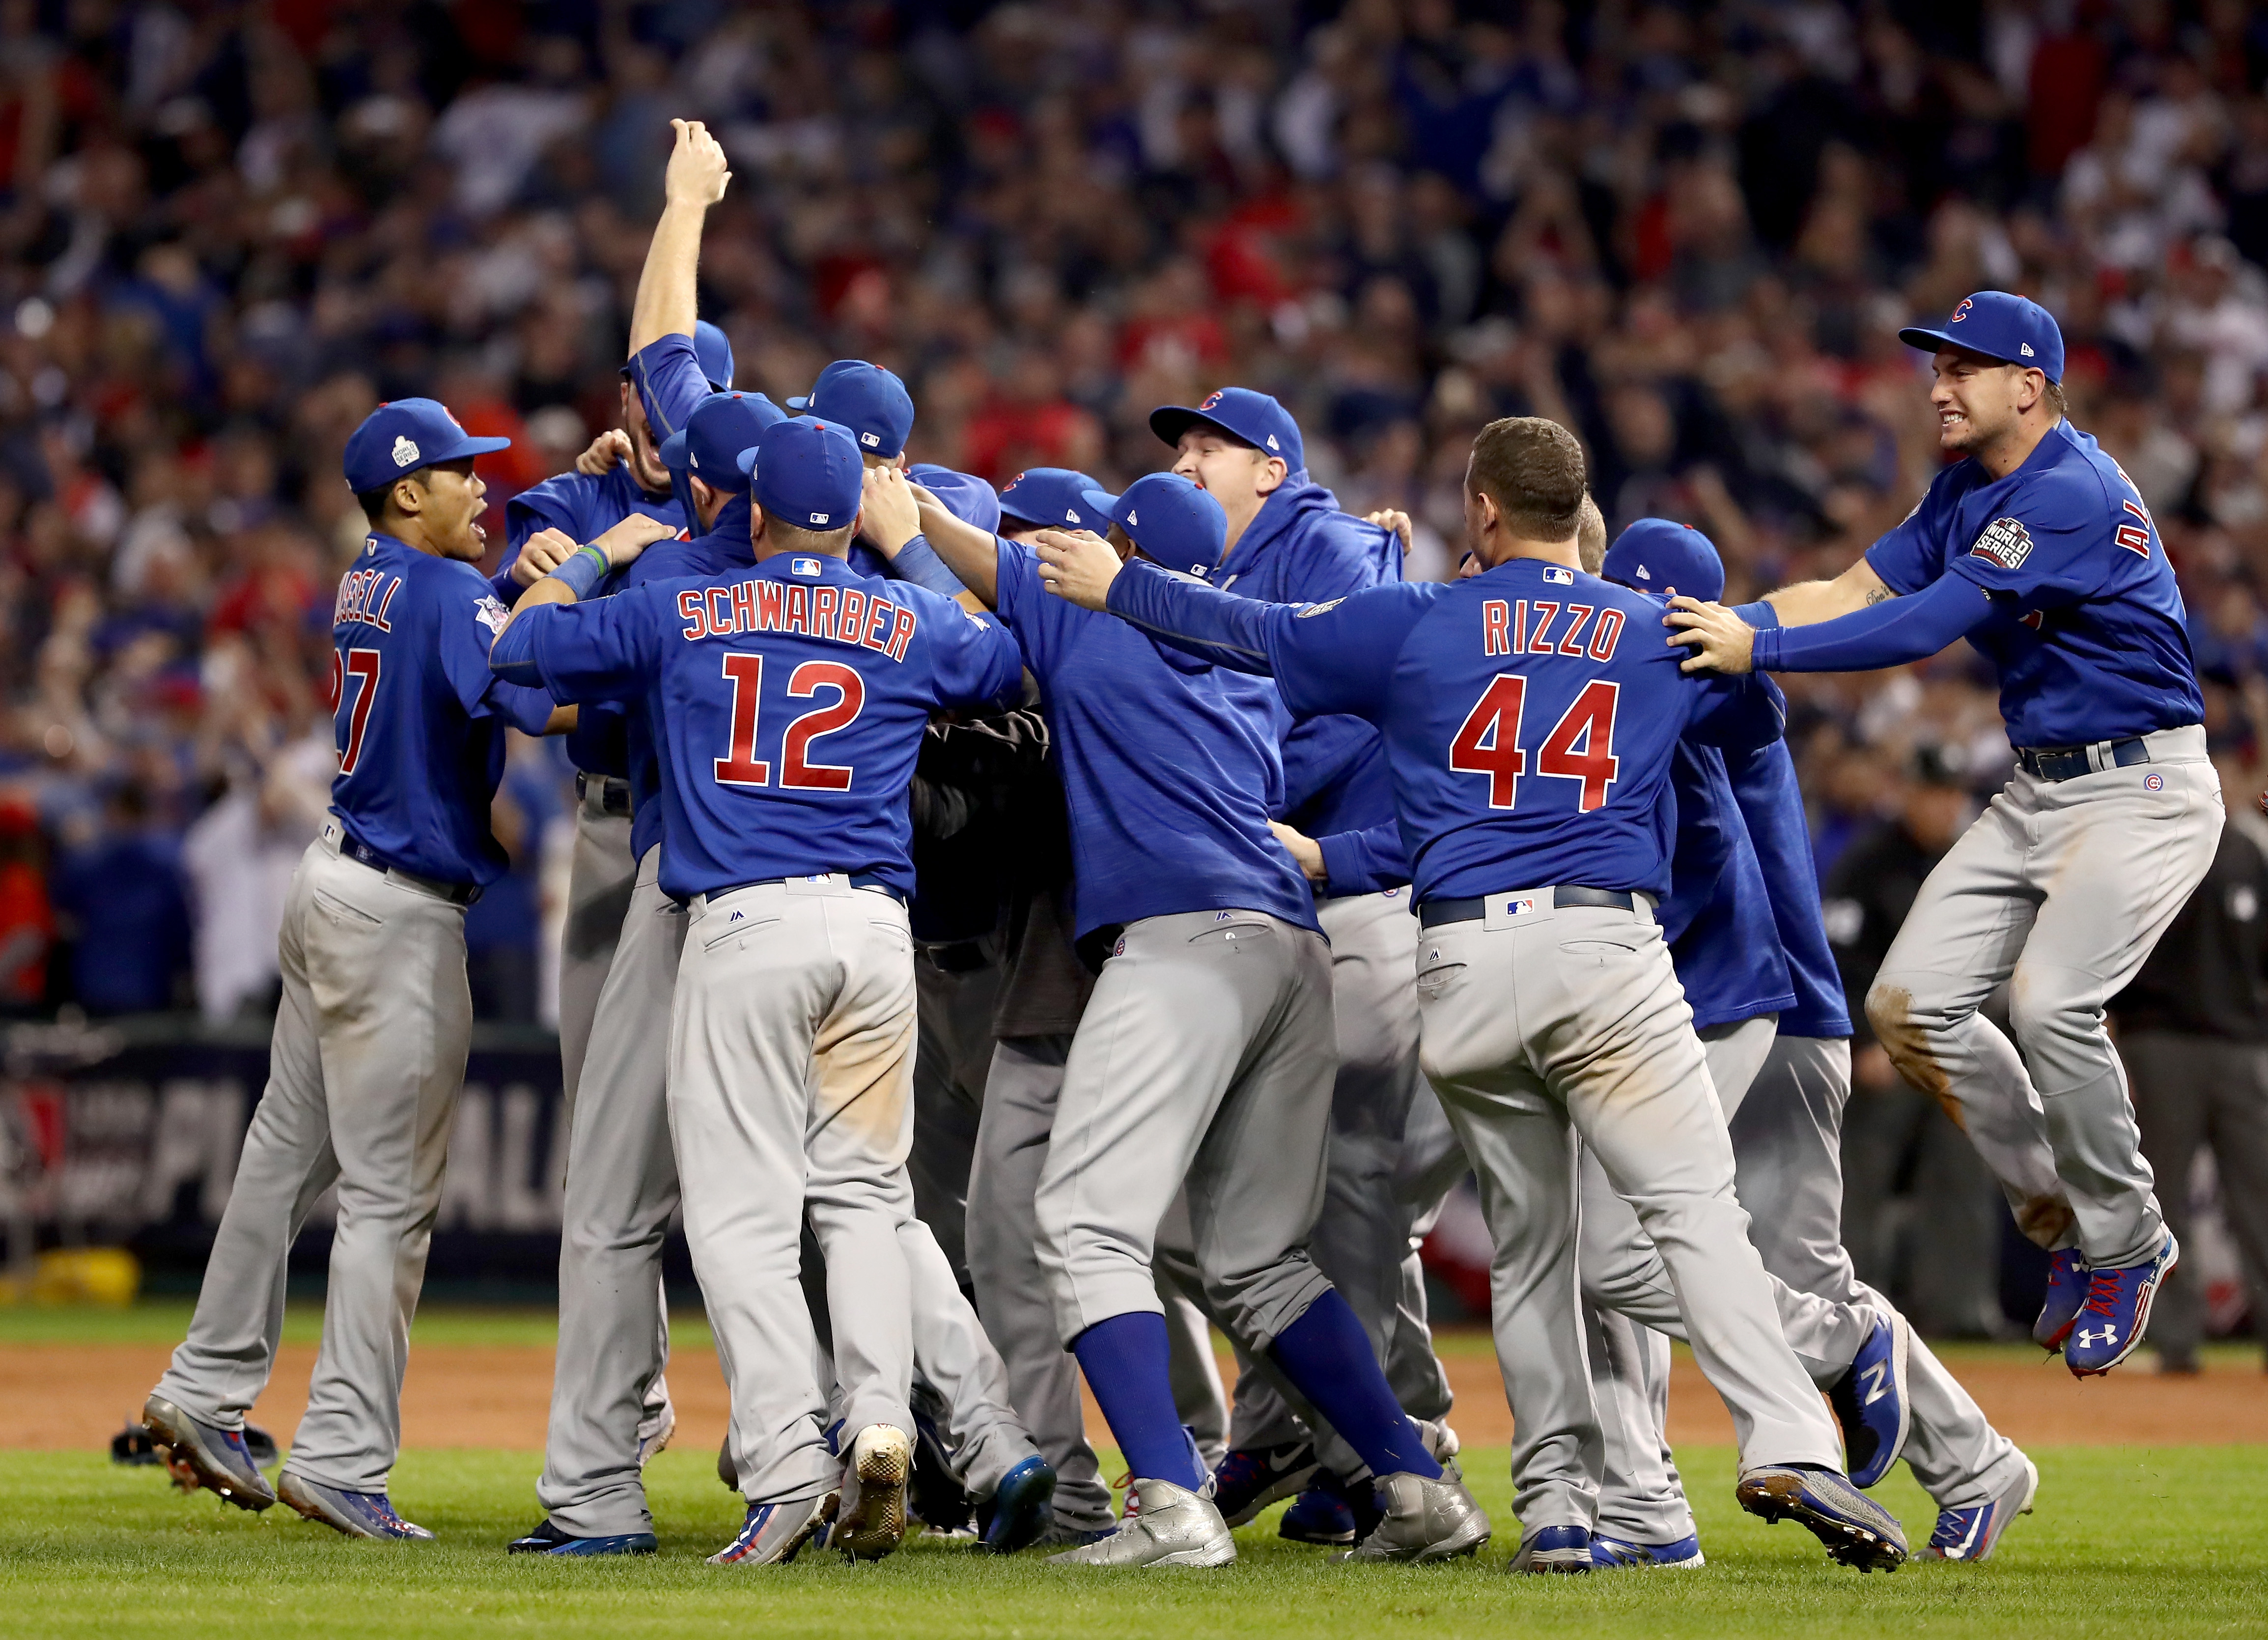 The Cheat Sheet Cubs Win The World Series In Maybe The Best Game 7 Ever